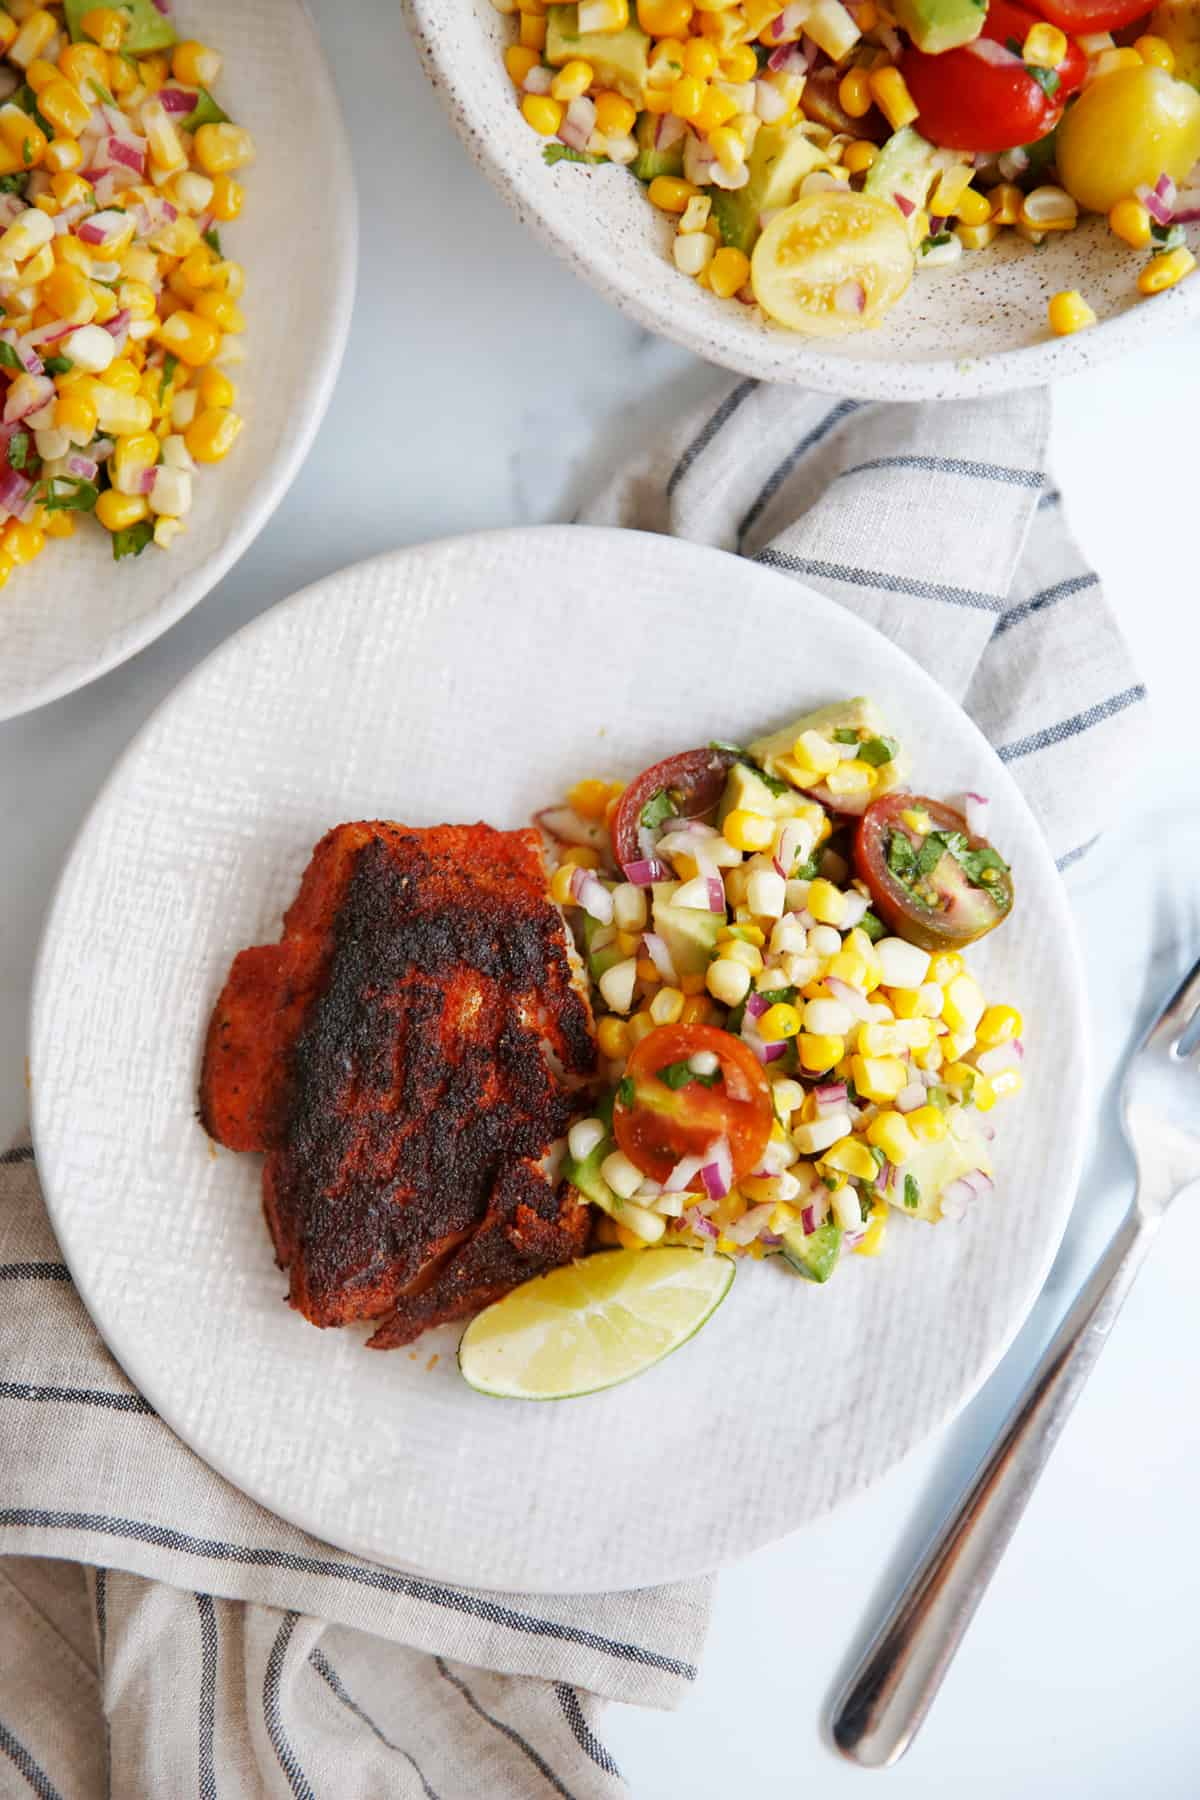 Blackened Fish recipe on a plate